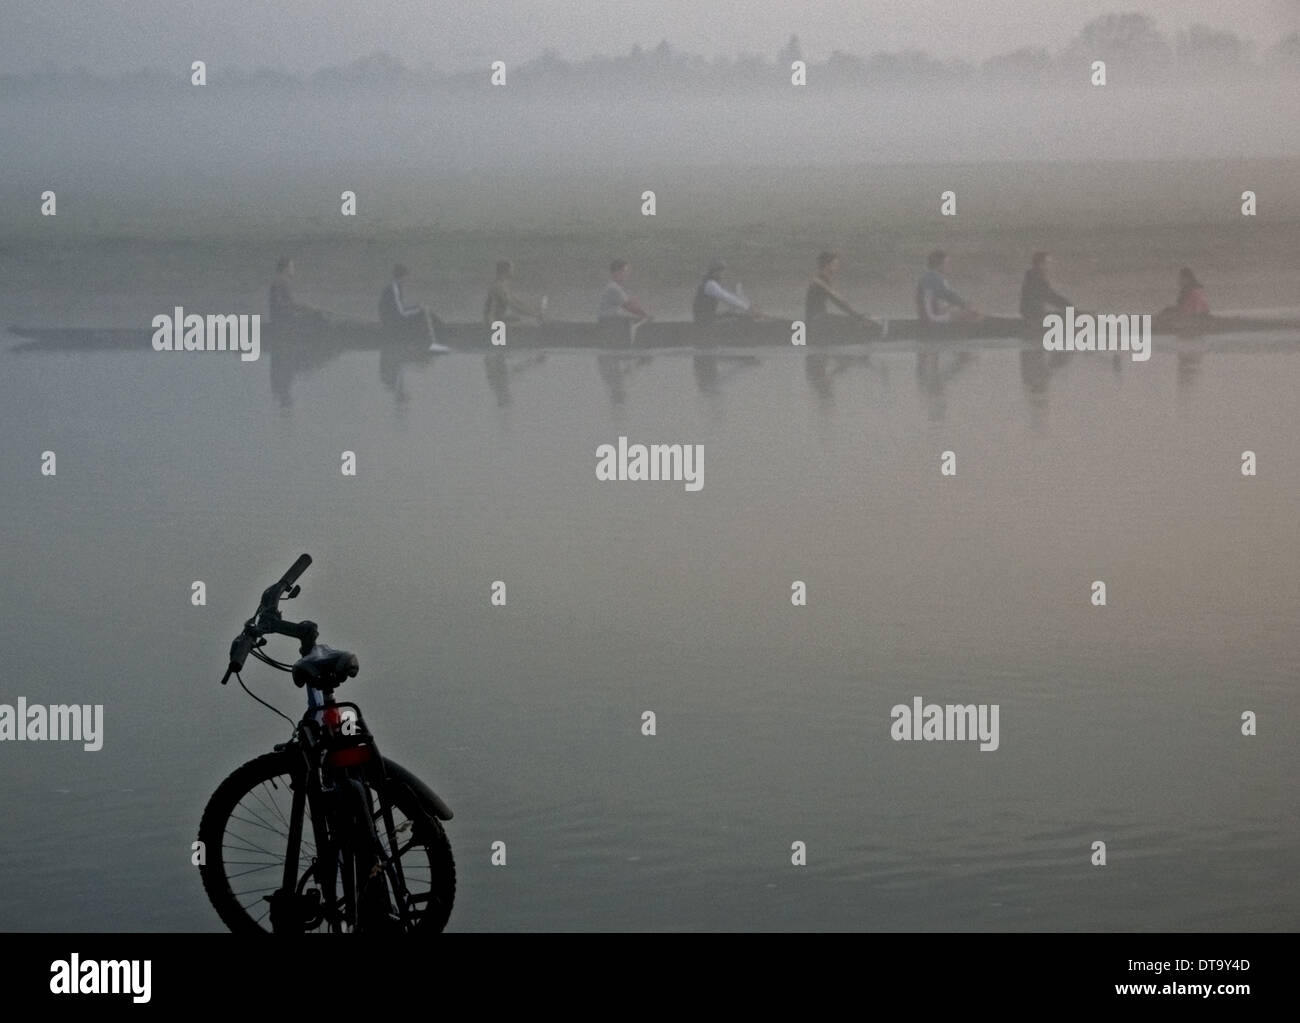 Early Morning Rowing eight on River Thames at Oxford - Stock Image